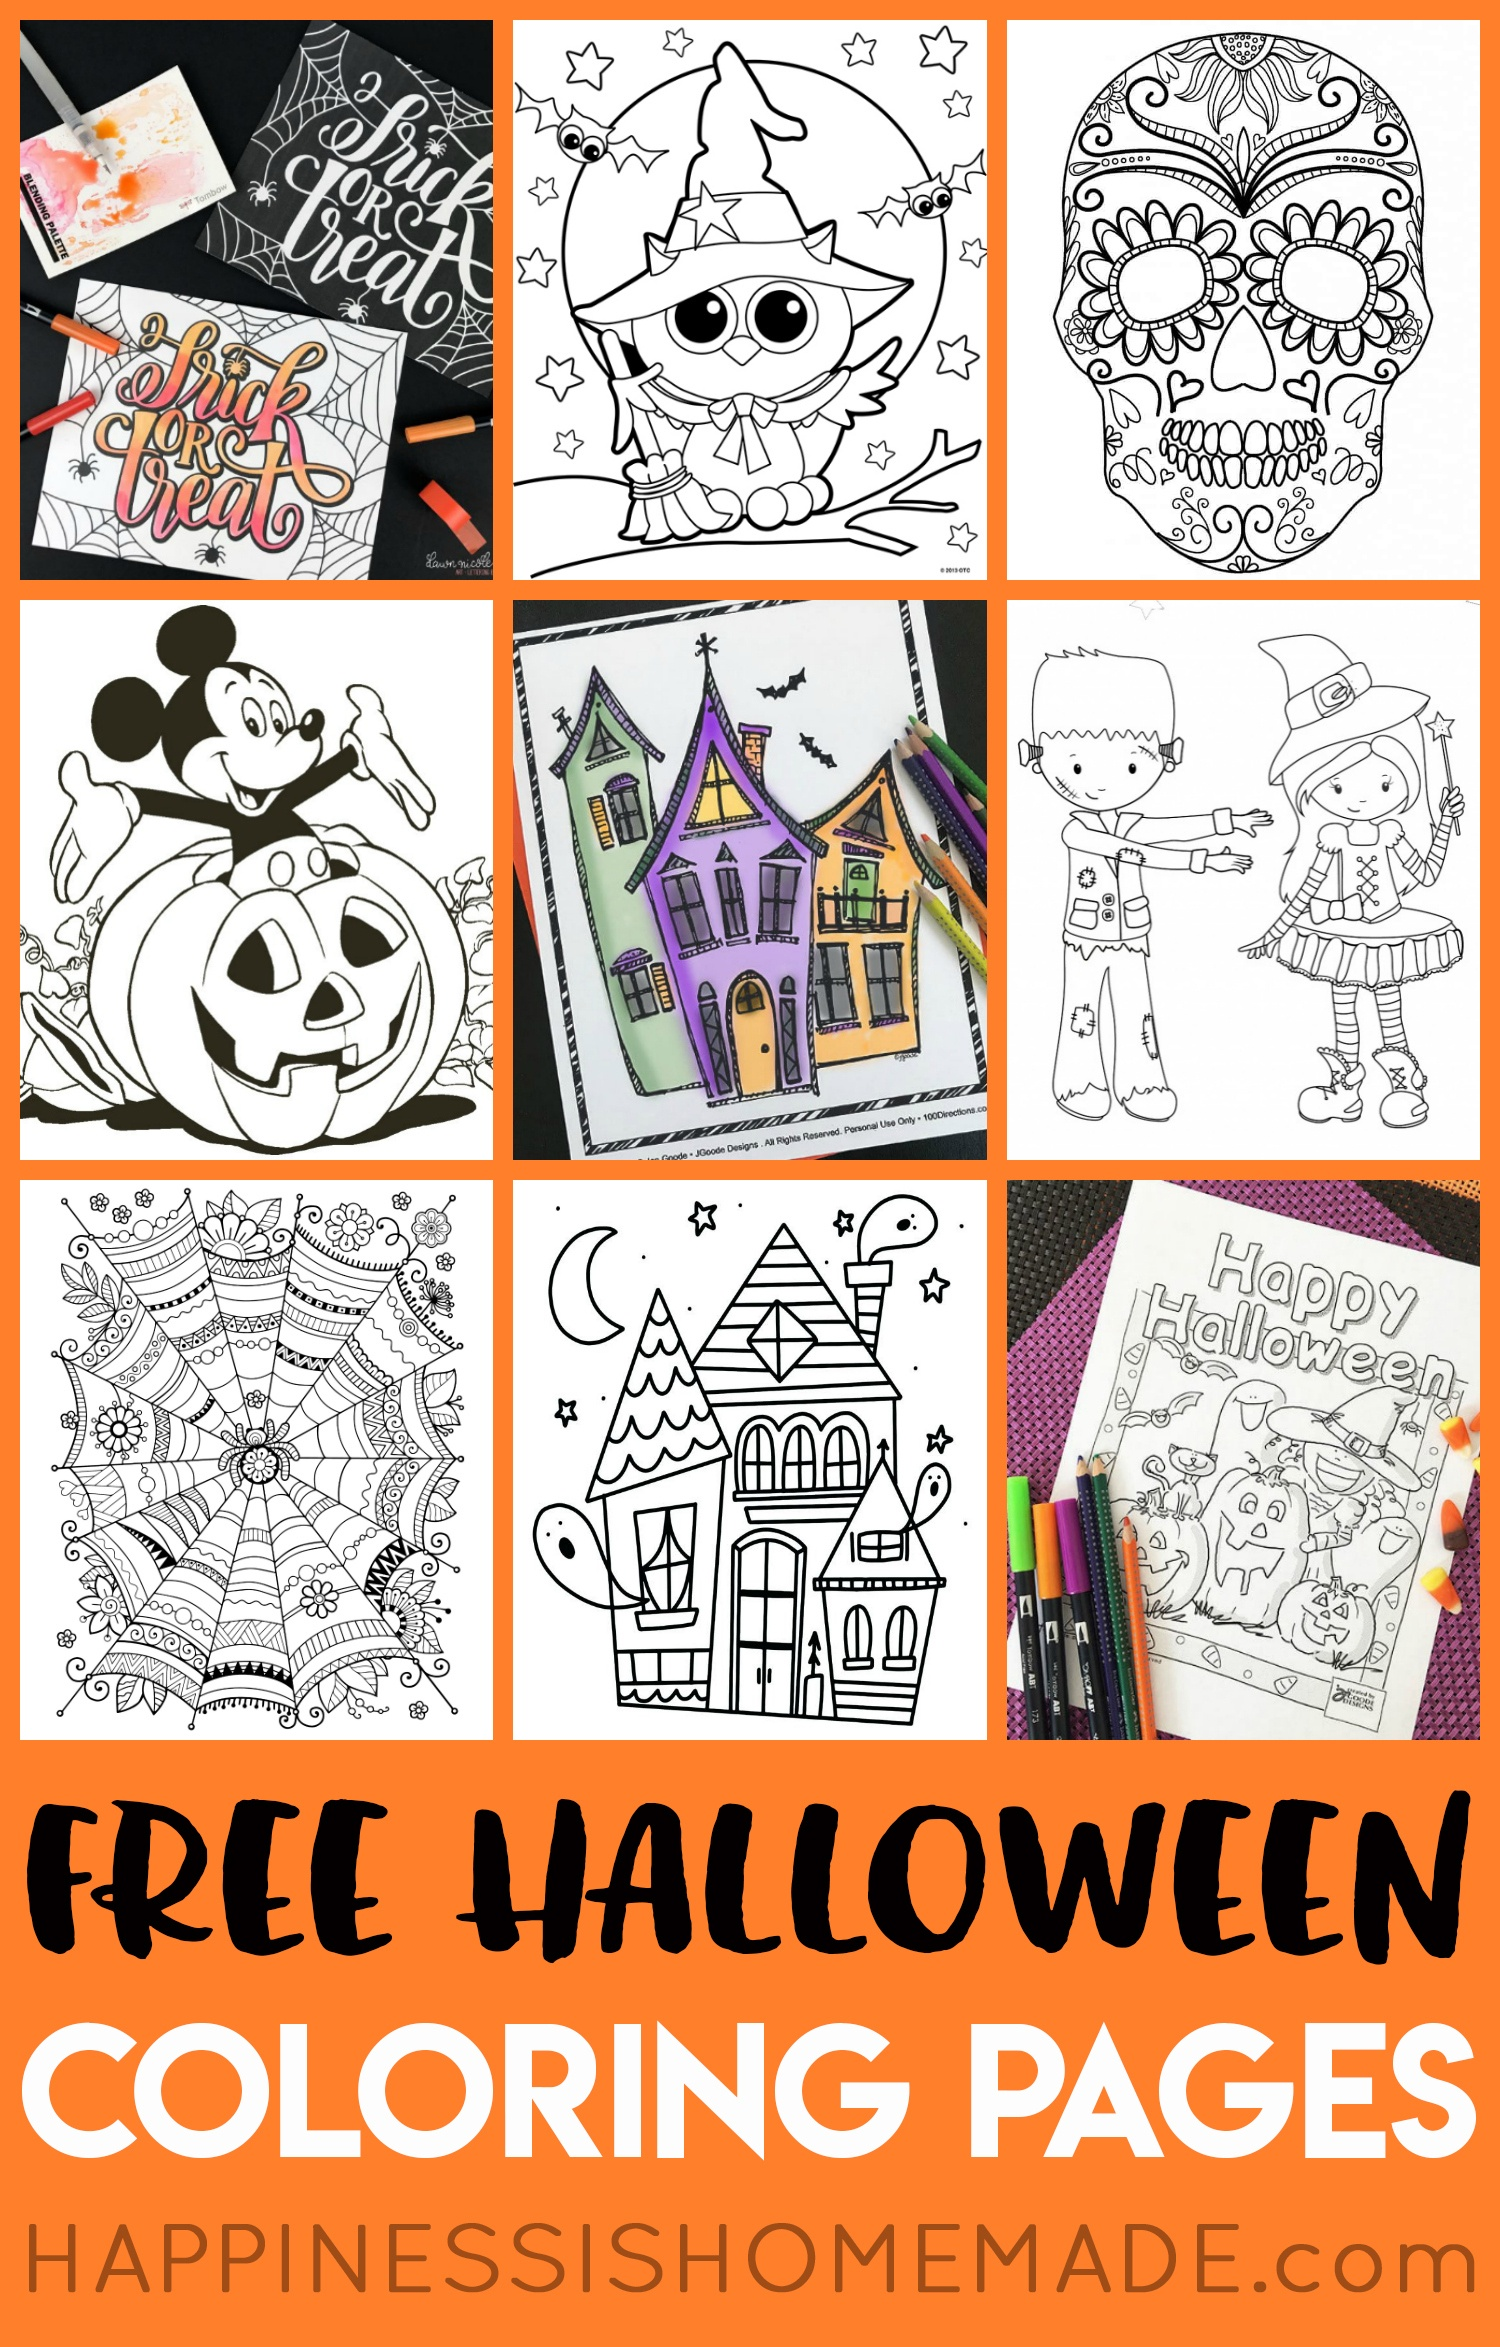 Free Halloween Coloring Pages For Adults & Kids - Happiness Is Homemade - Free Halloween Printables